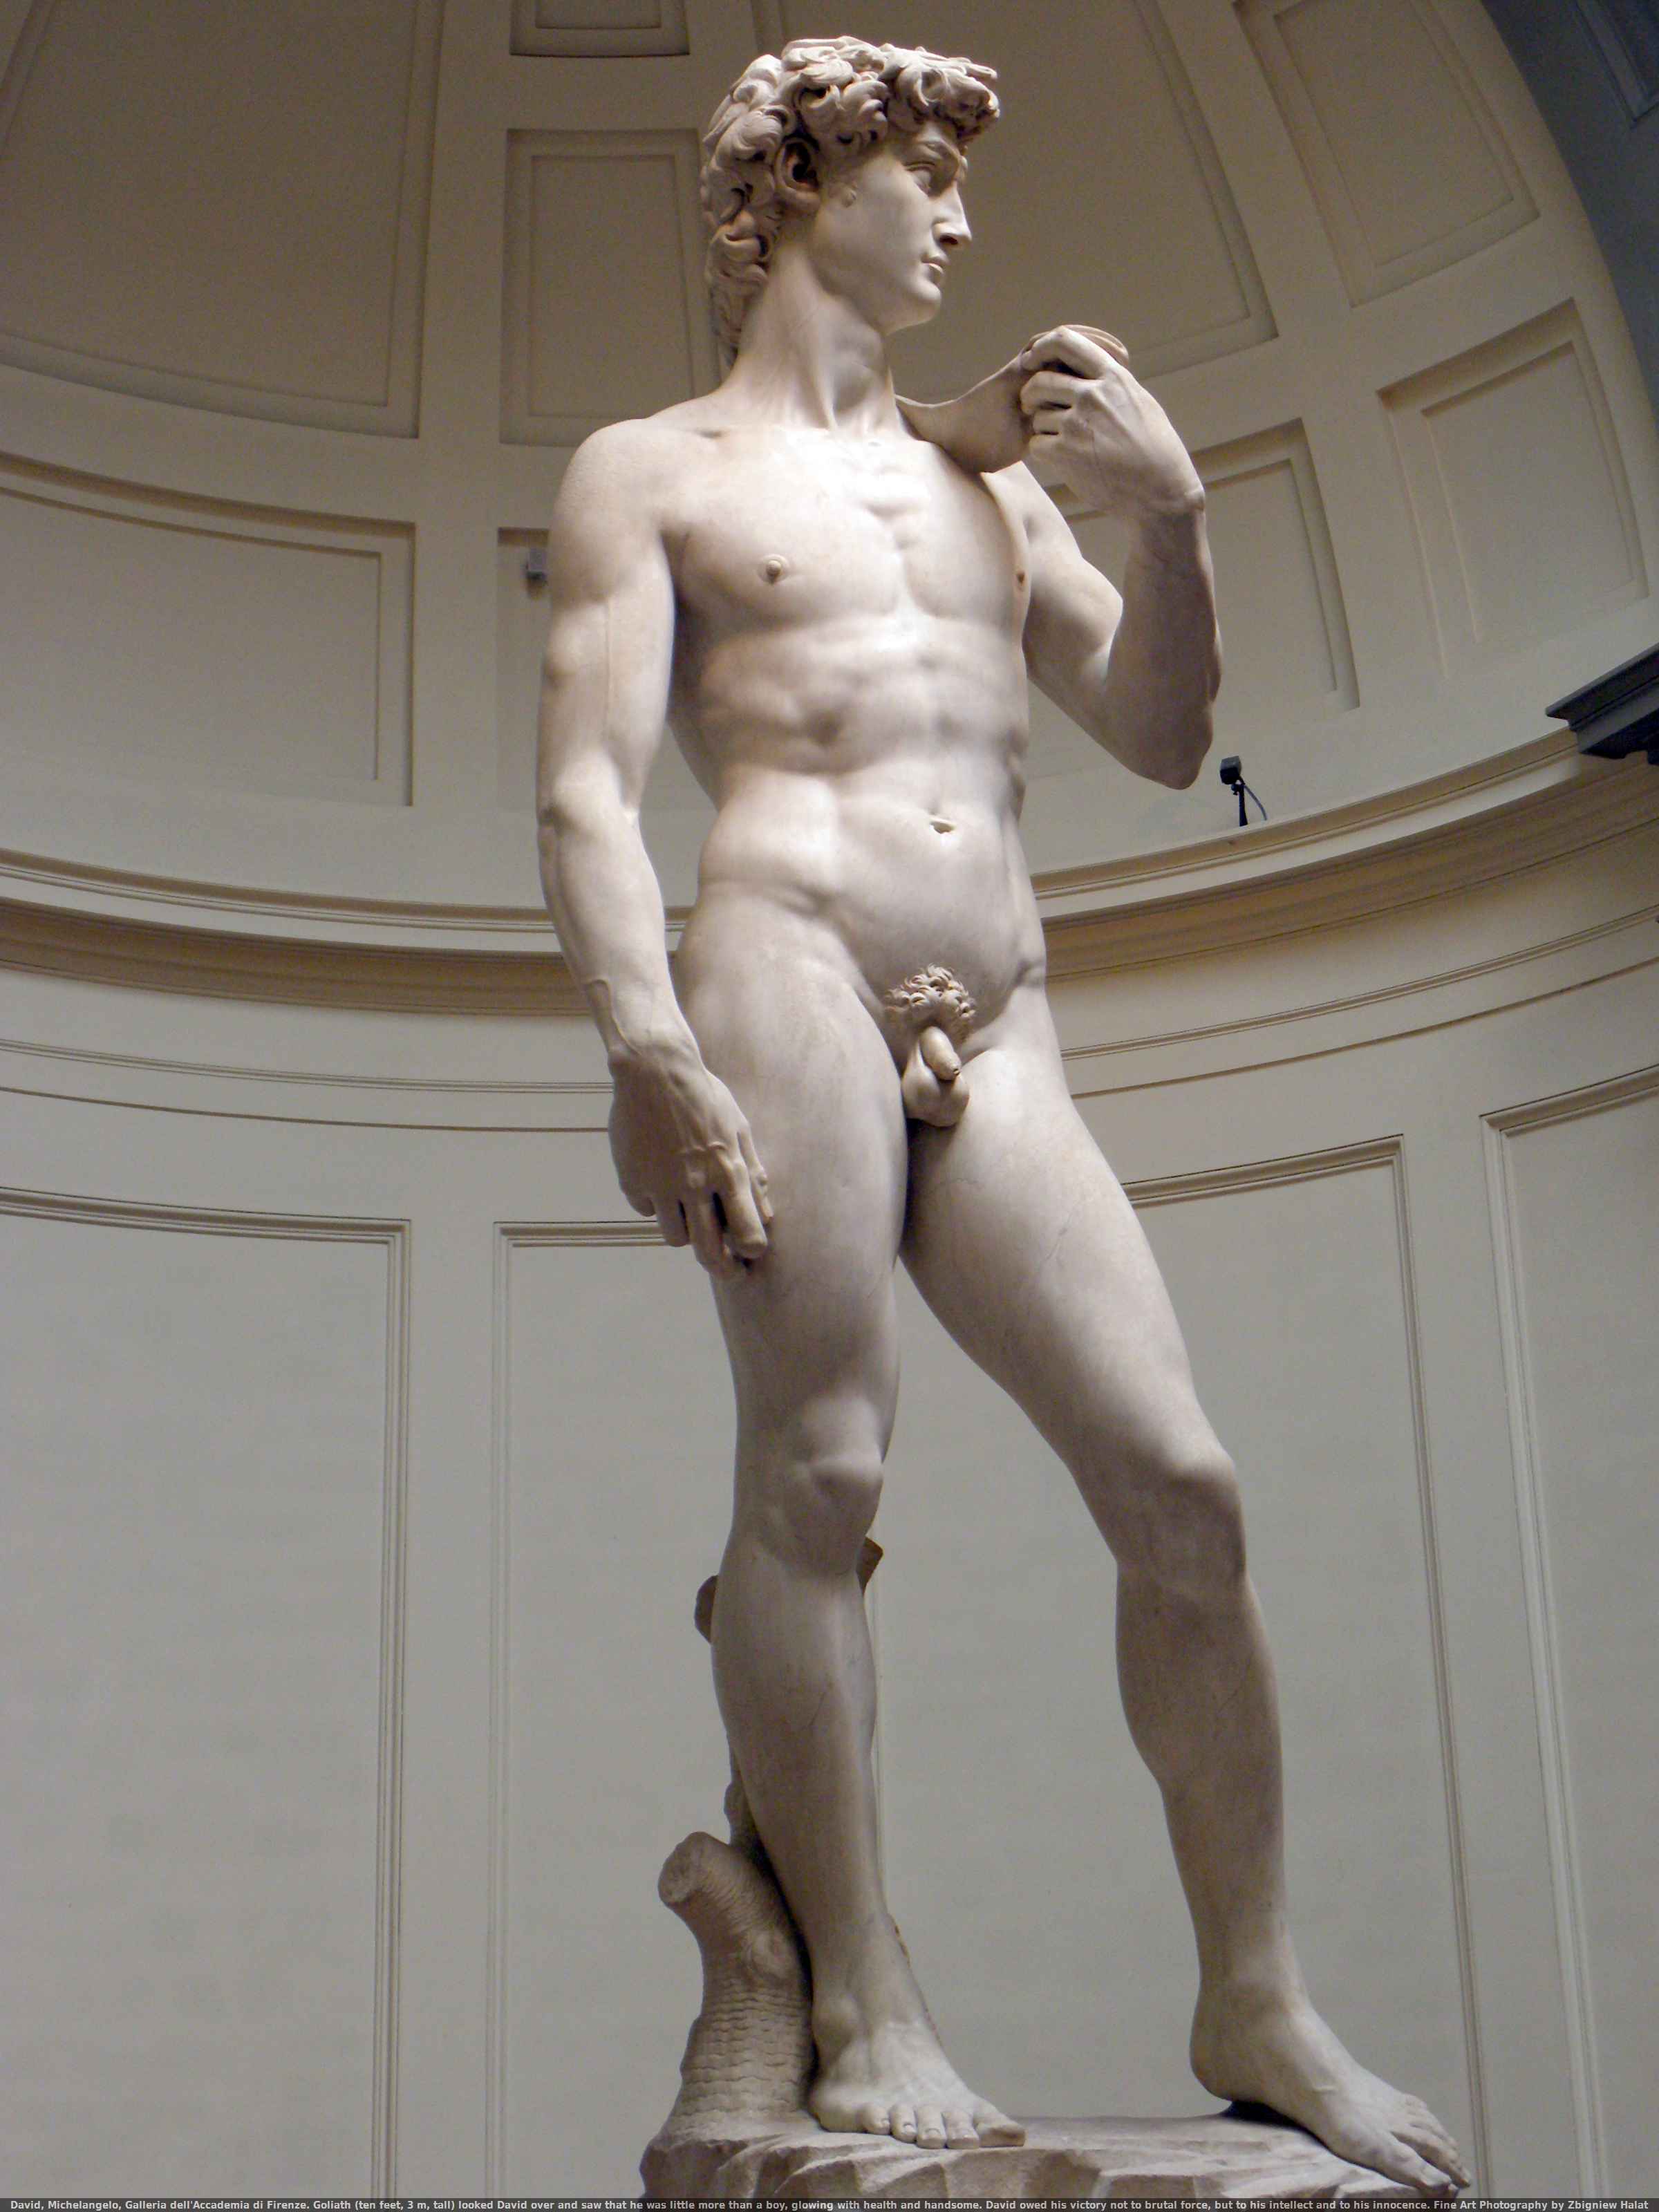 David, Michelangelo, Galleria dell'Accademia di Firenze. Goliath (10 feet, 3 m, tall) looked David over and saw that he was little more than a boy, glowing with health and handsome. David owed his victory not to brutal force, but to his intellect and to his innocence. Fine Art Photography by Zbigniew Halat